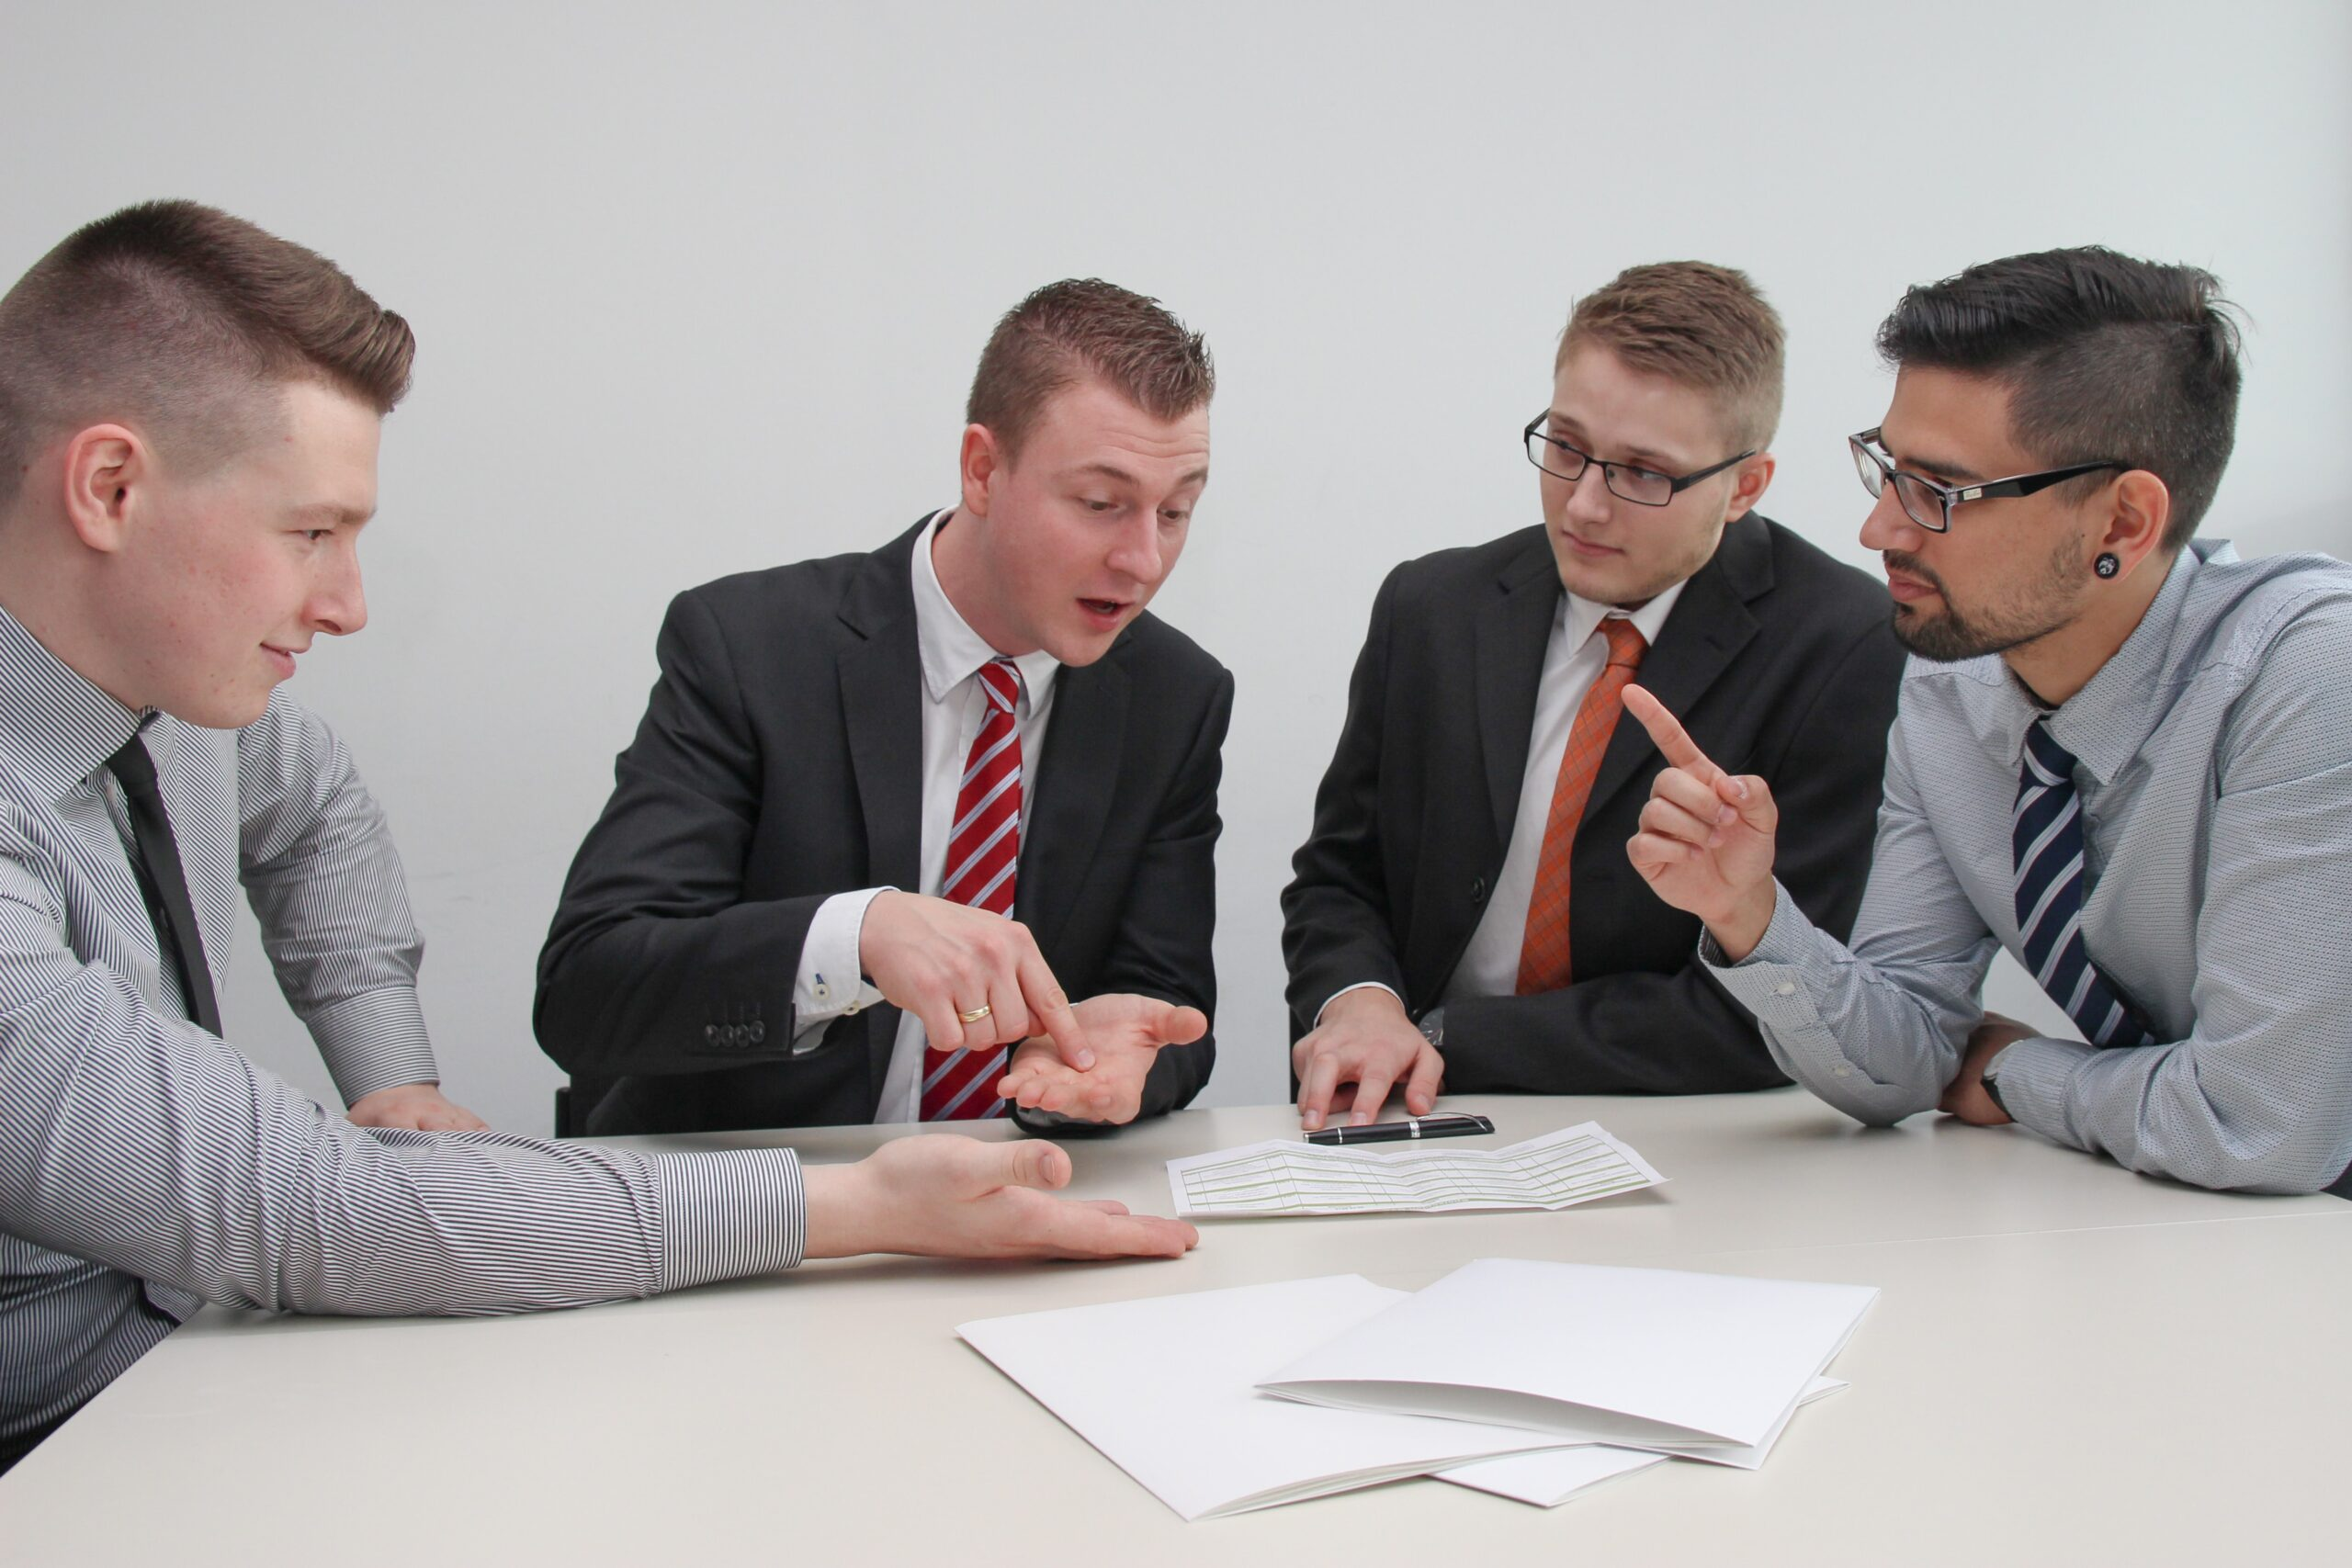 Four businessmen in a meeting with papers on a conference table.